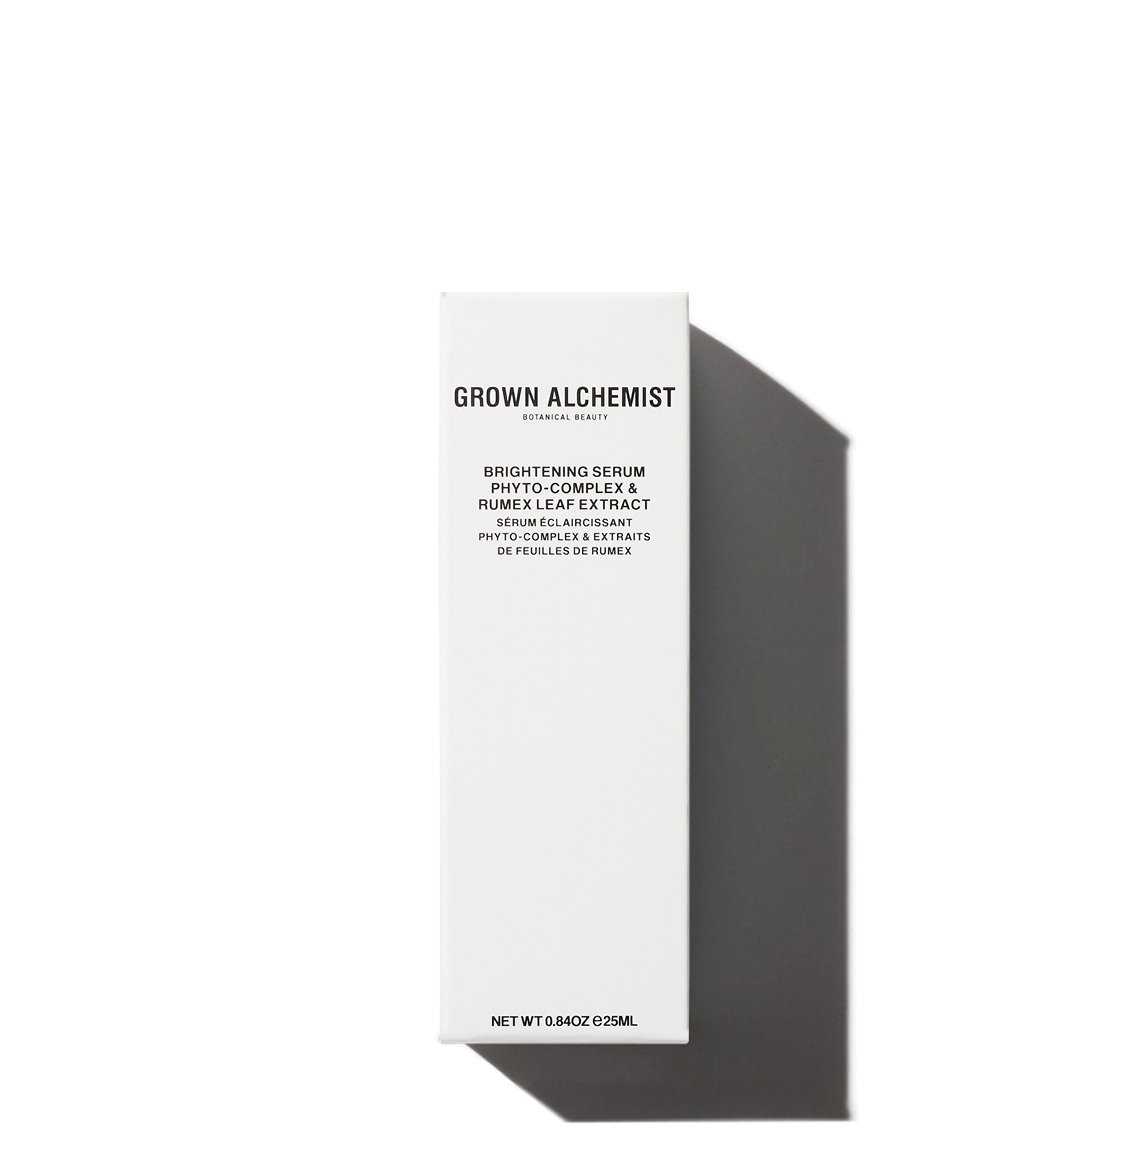 Grown Alchemist Brightening Serum 25ml